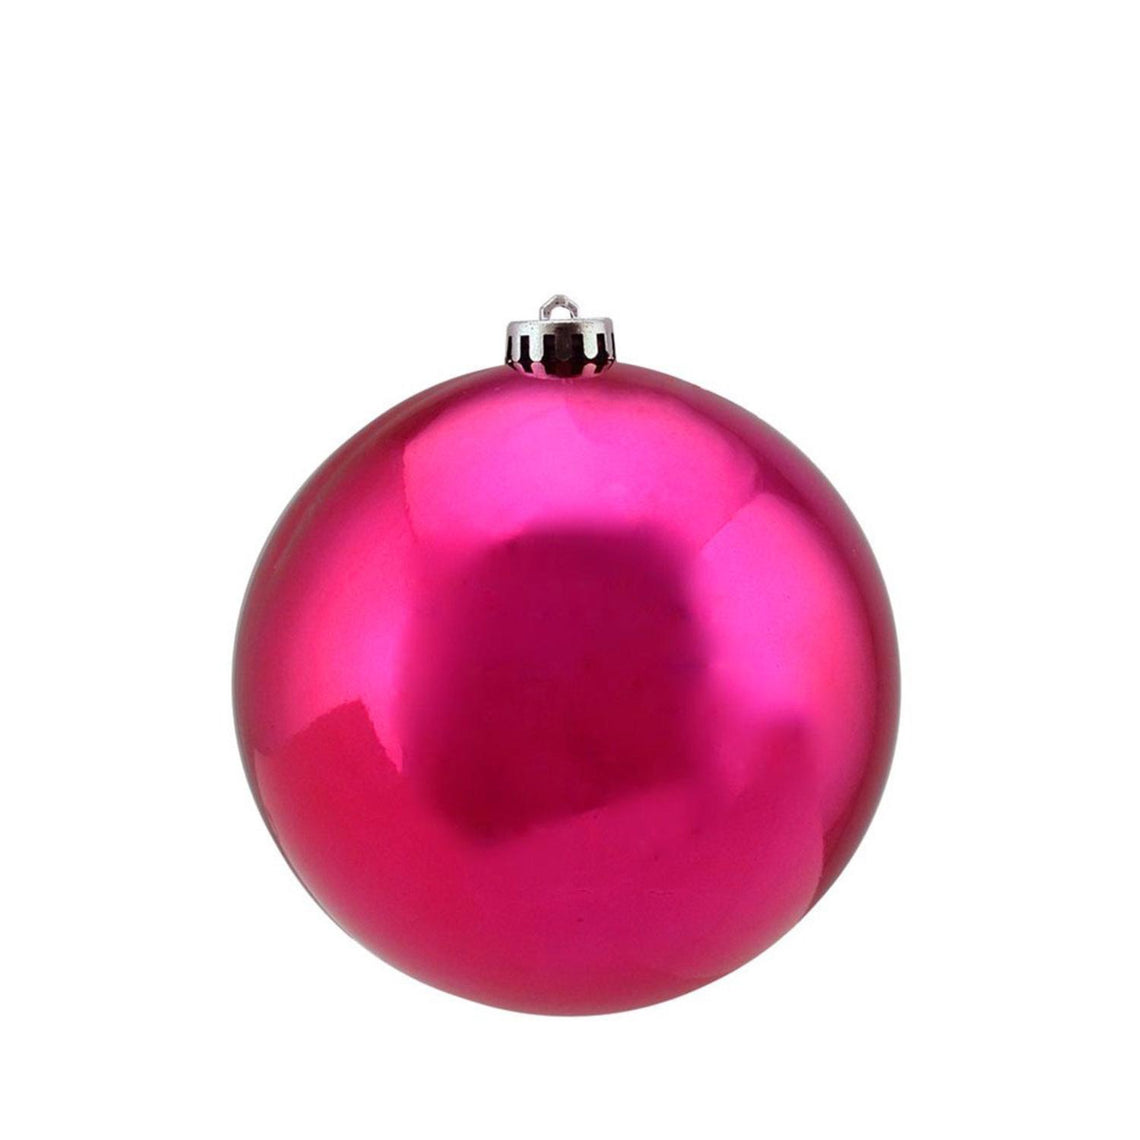 Shiny Pink Magenta Uv Resistant Commercial Shatterproof Christmas Ball Ornament 6